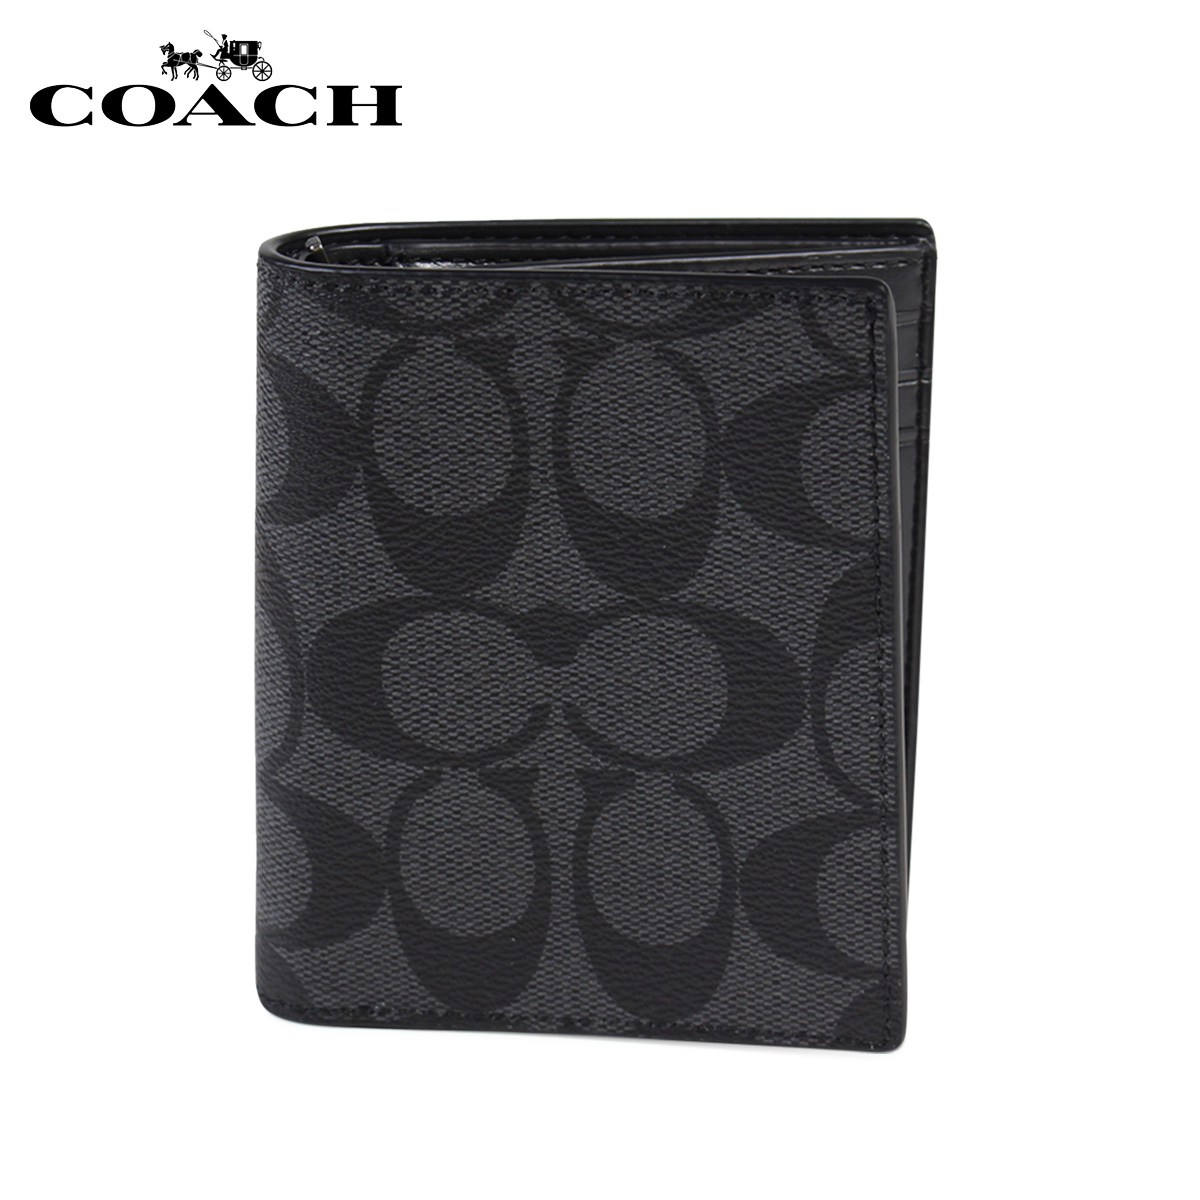 c4ea0d8efaf2 Allsports Coach Wallet Folio Men Leather F11971 Cqbk Gray 10